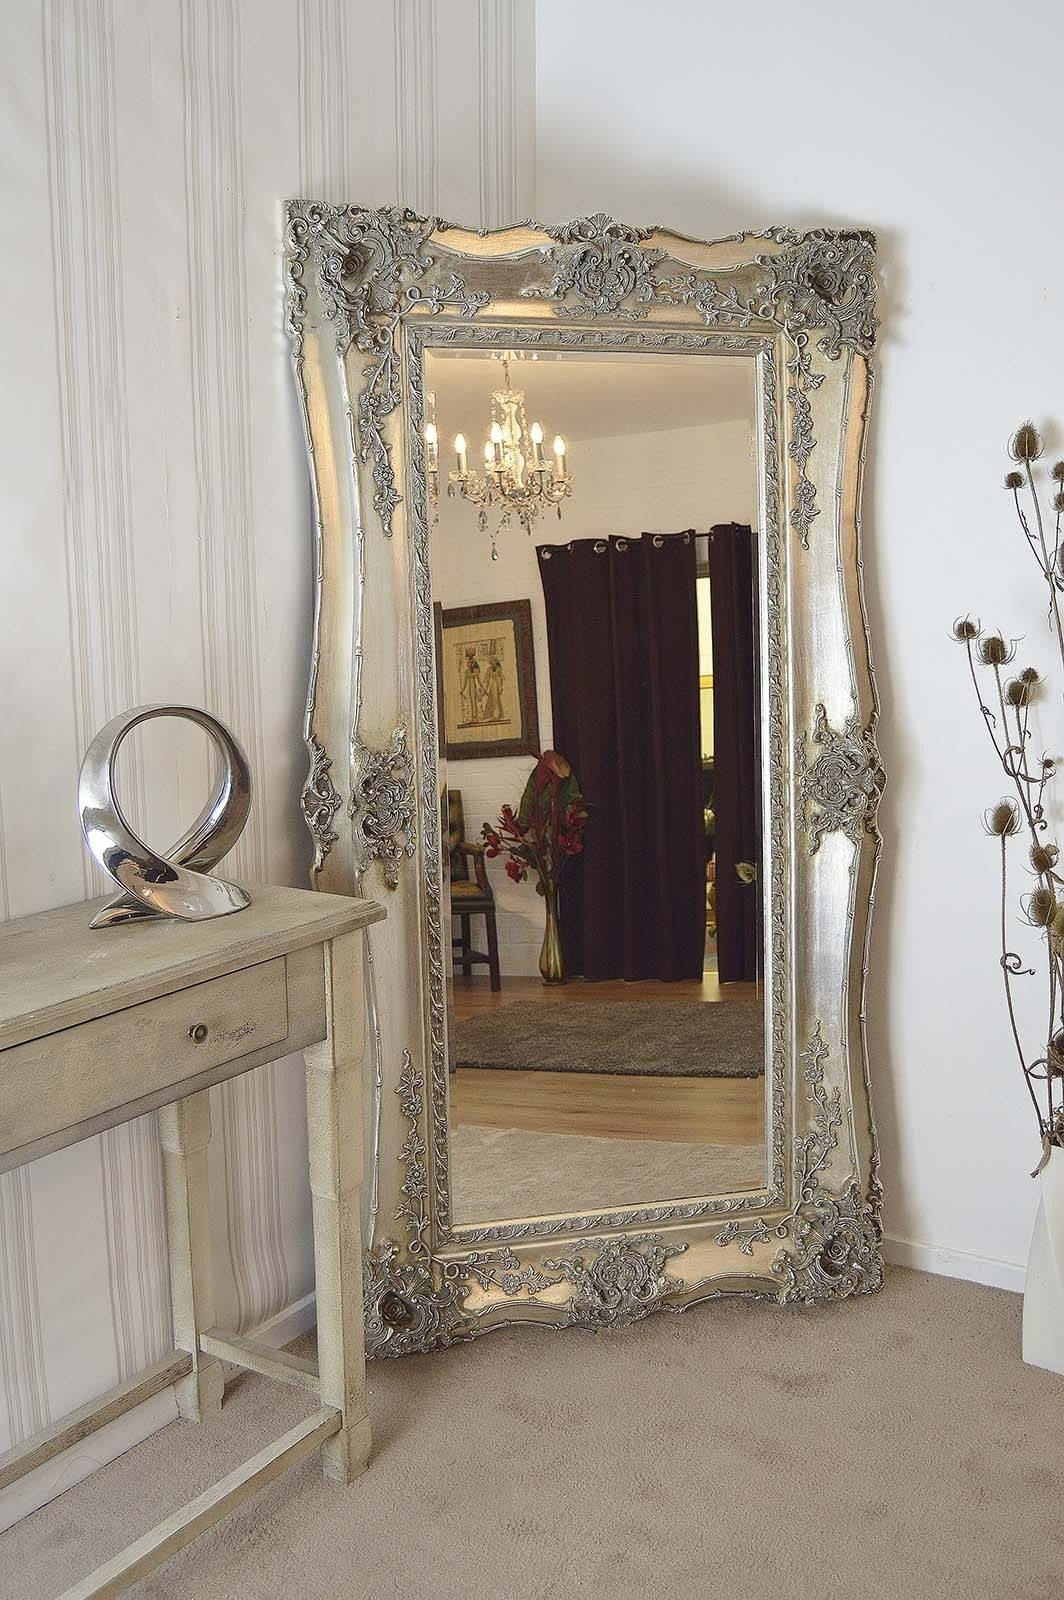 Homeware: Oval Full Length Standing Mirror | Large Floor Mirrors In Silver Floor Standing Mirrors (View 19 of 25)